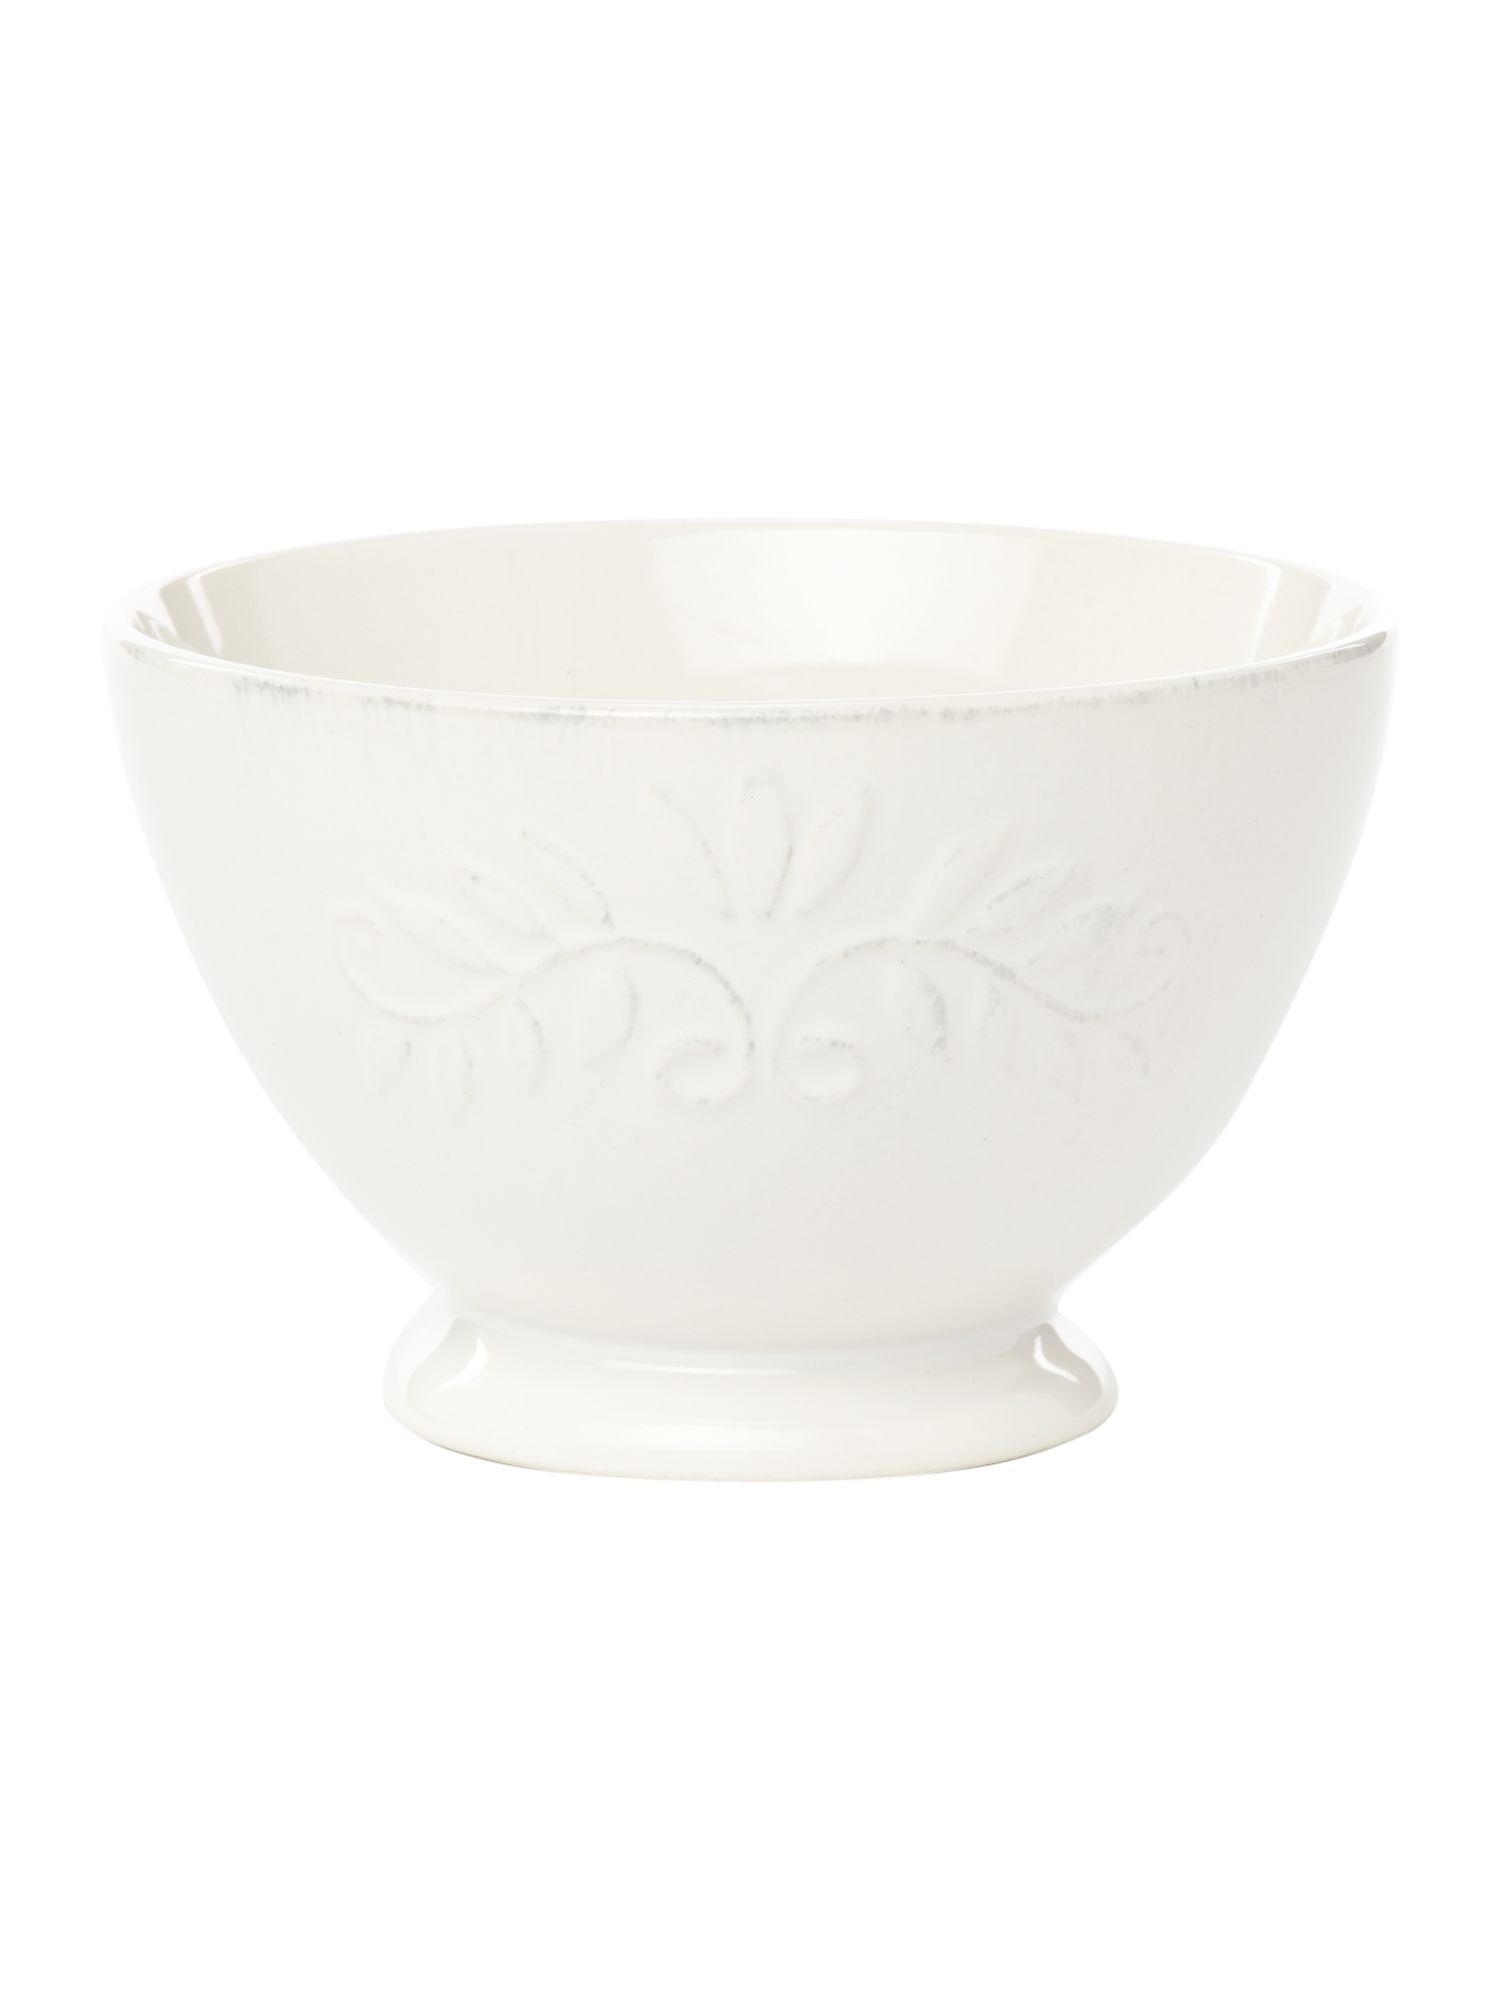 Elizabeth footed bowl